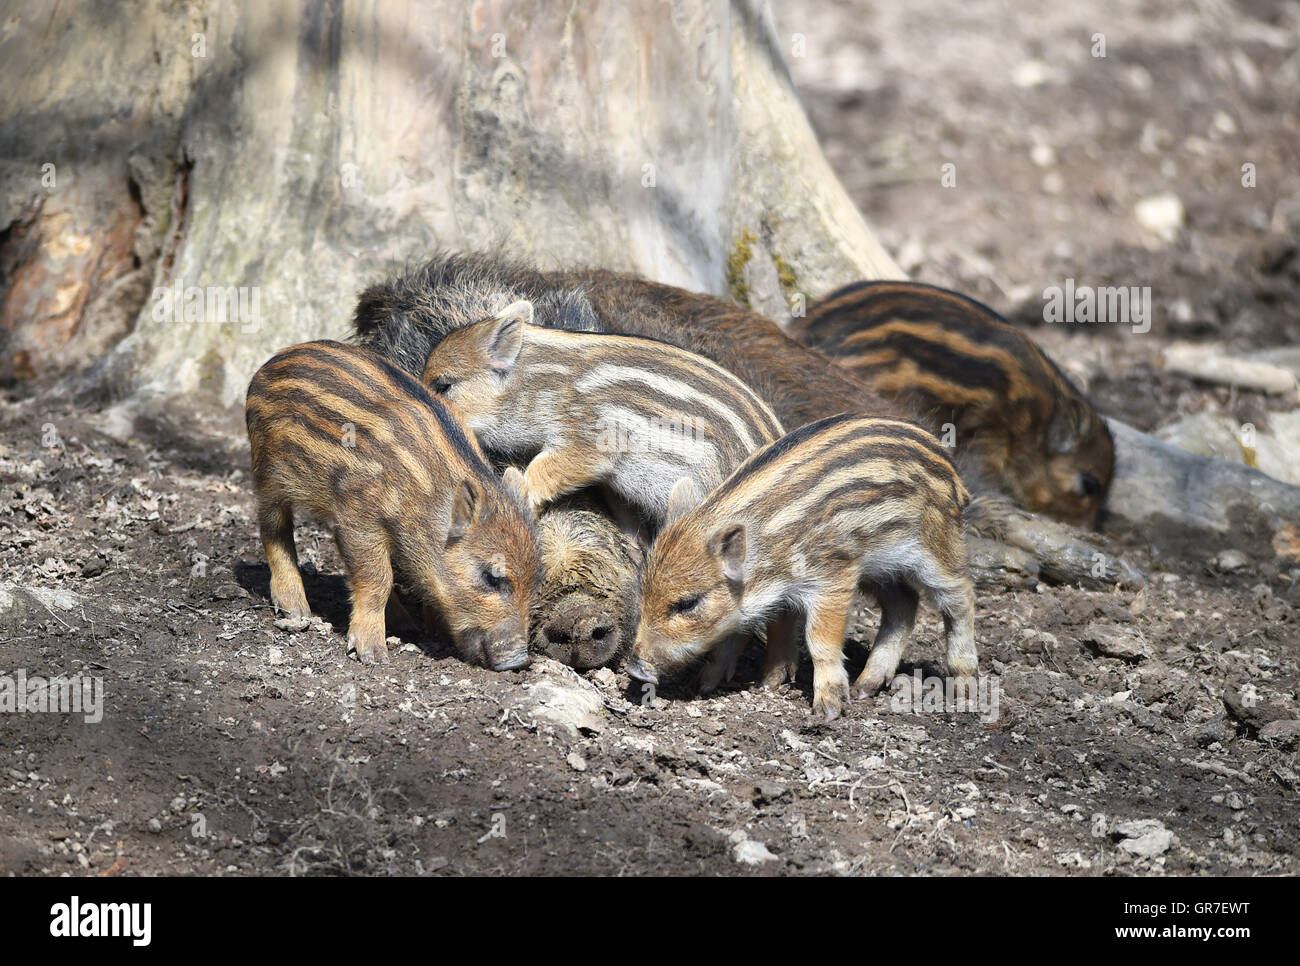 Piglet And Sleeping Boar - Stock Image